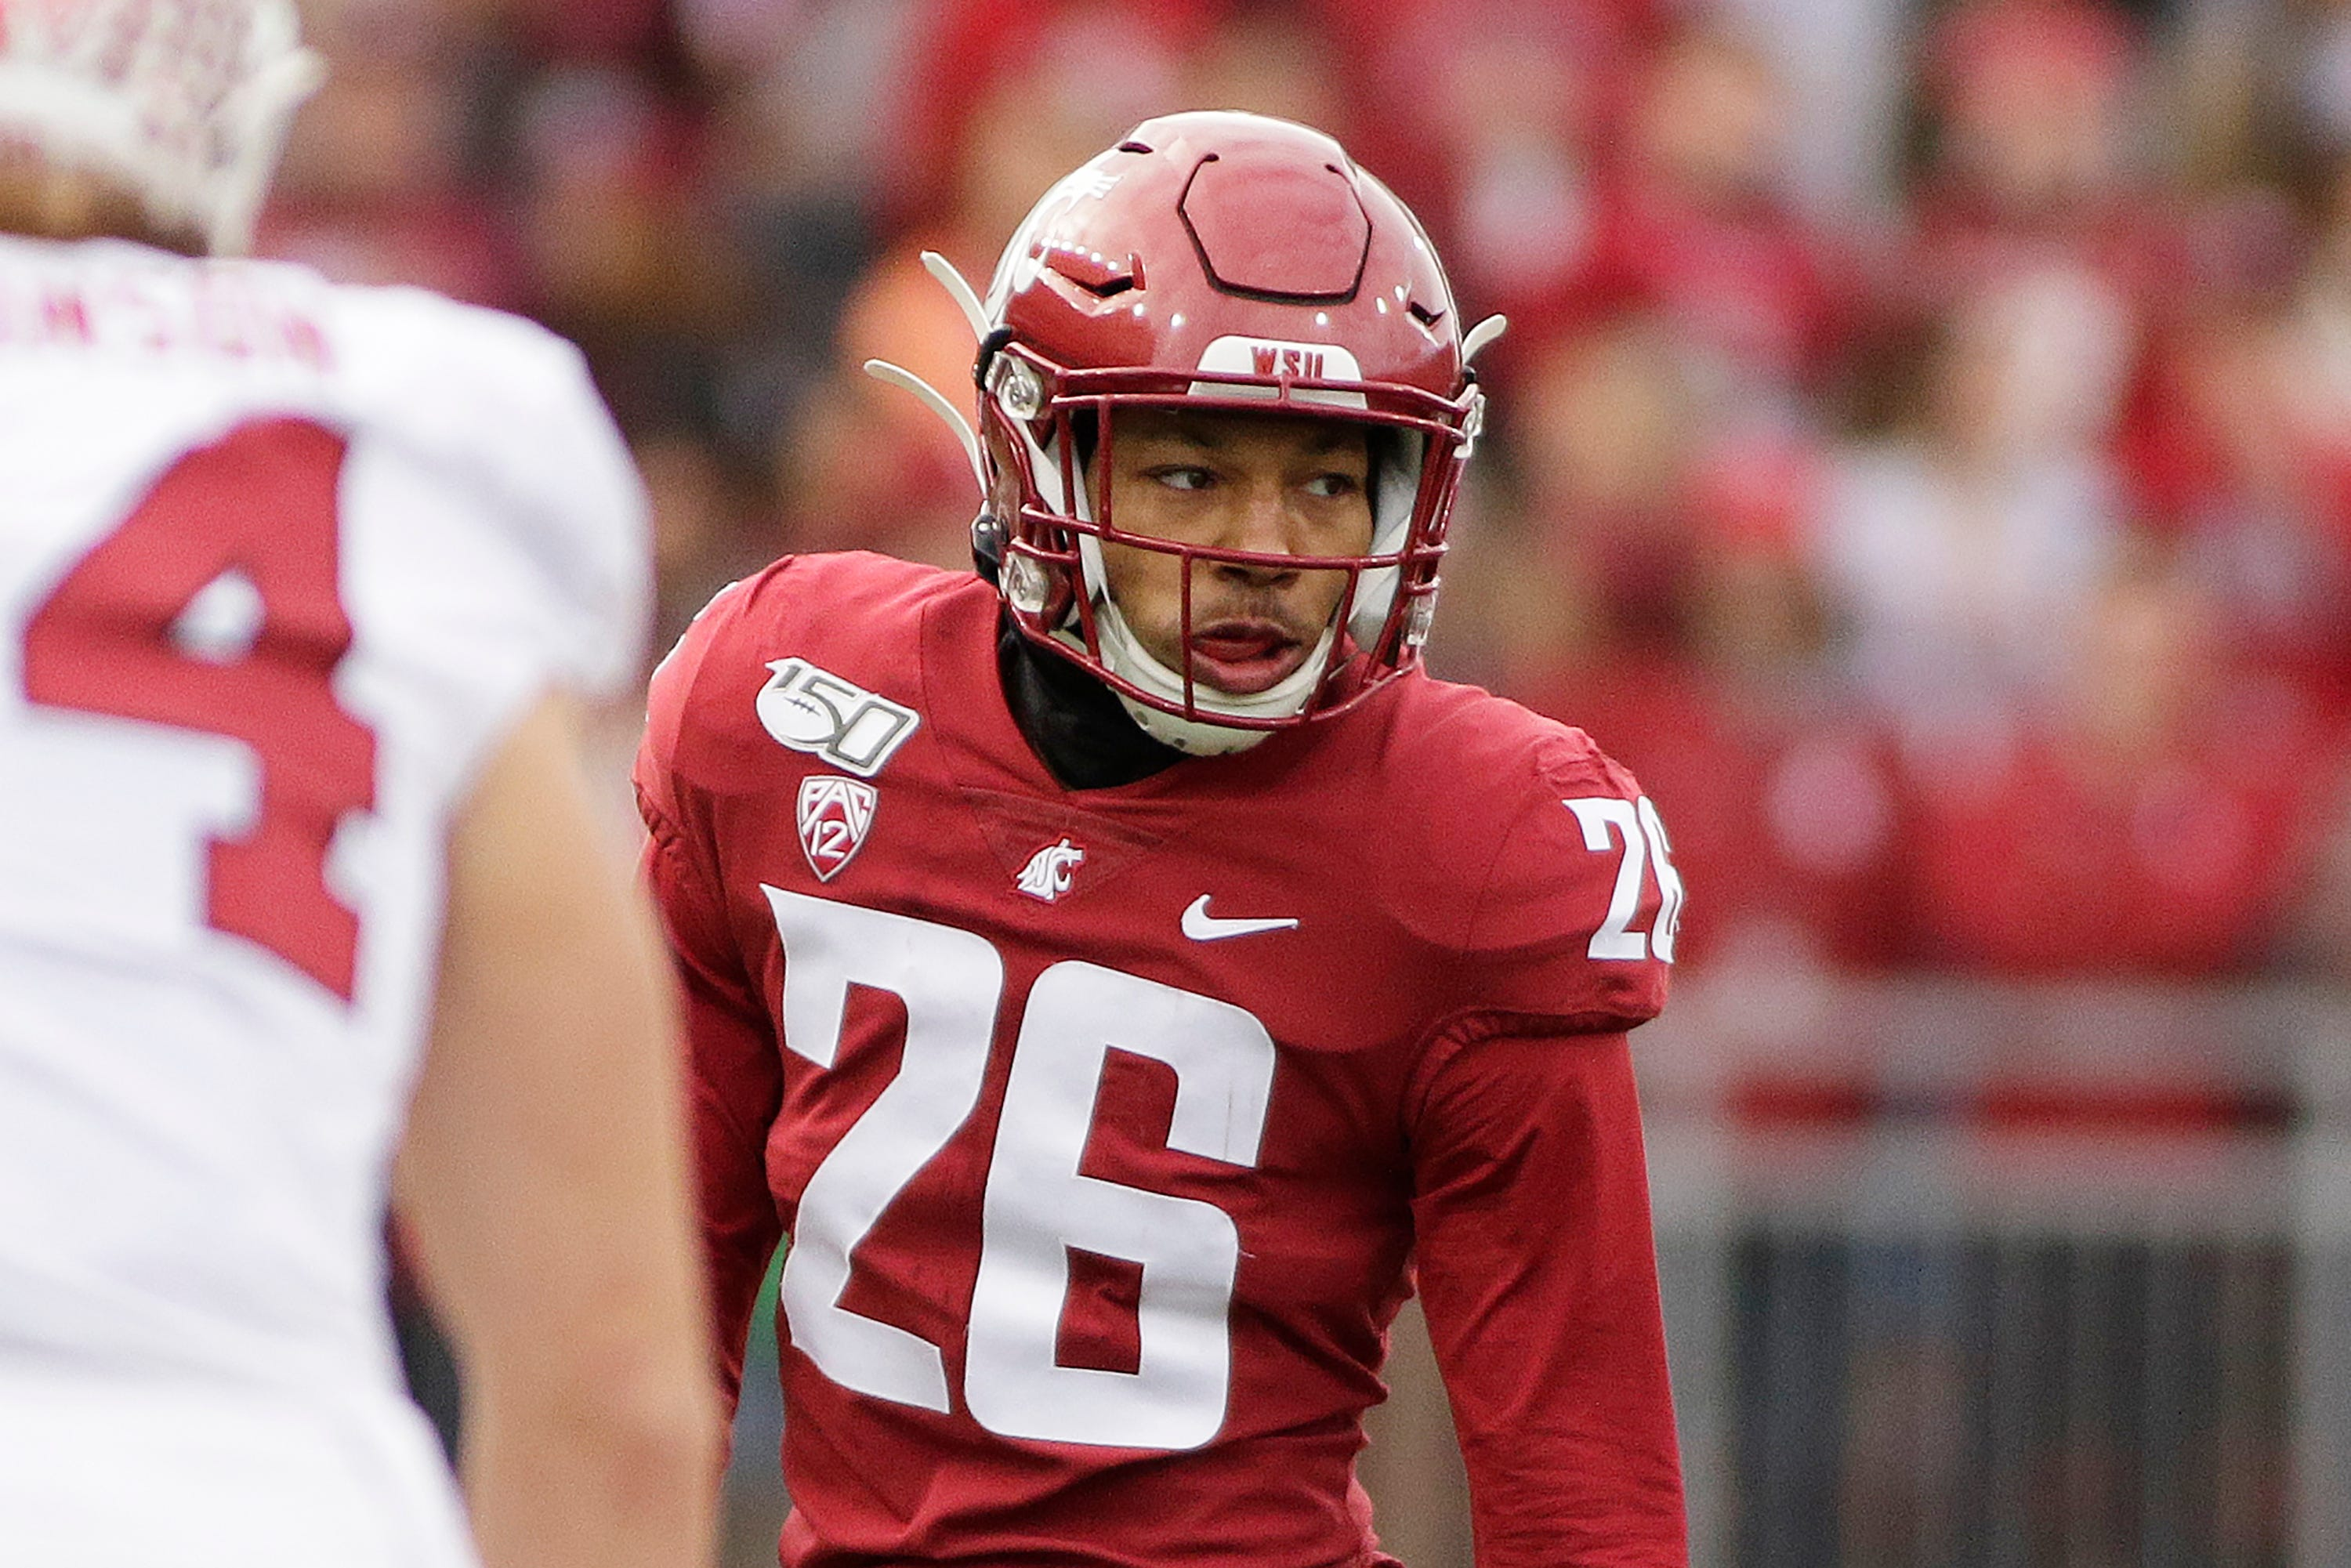 Washington State football player Bryce Beekman dies at 22